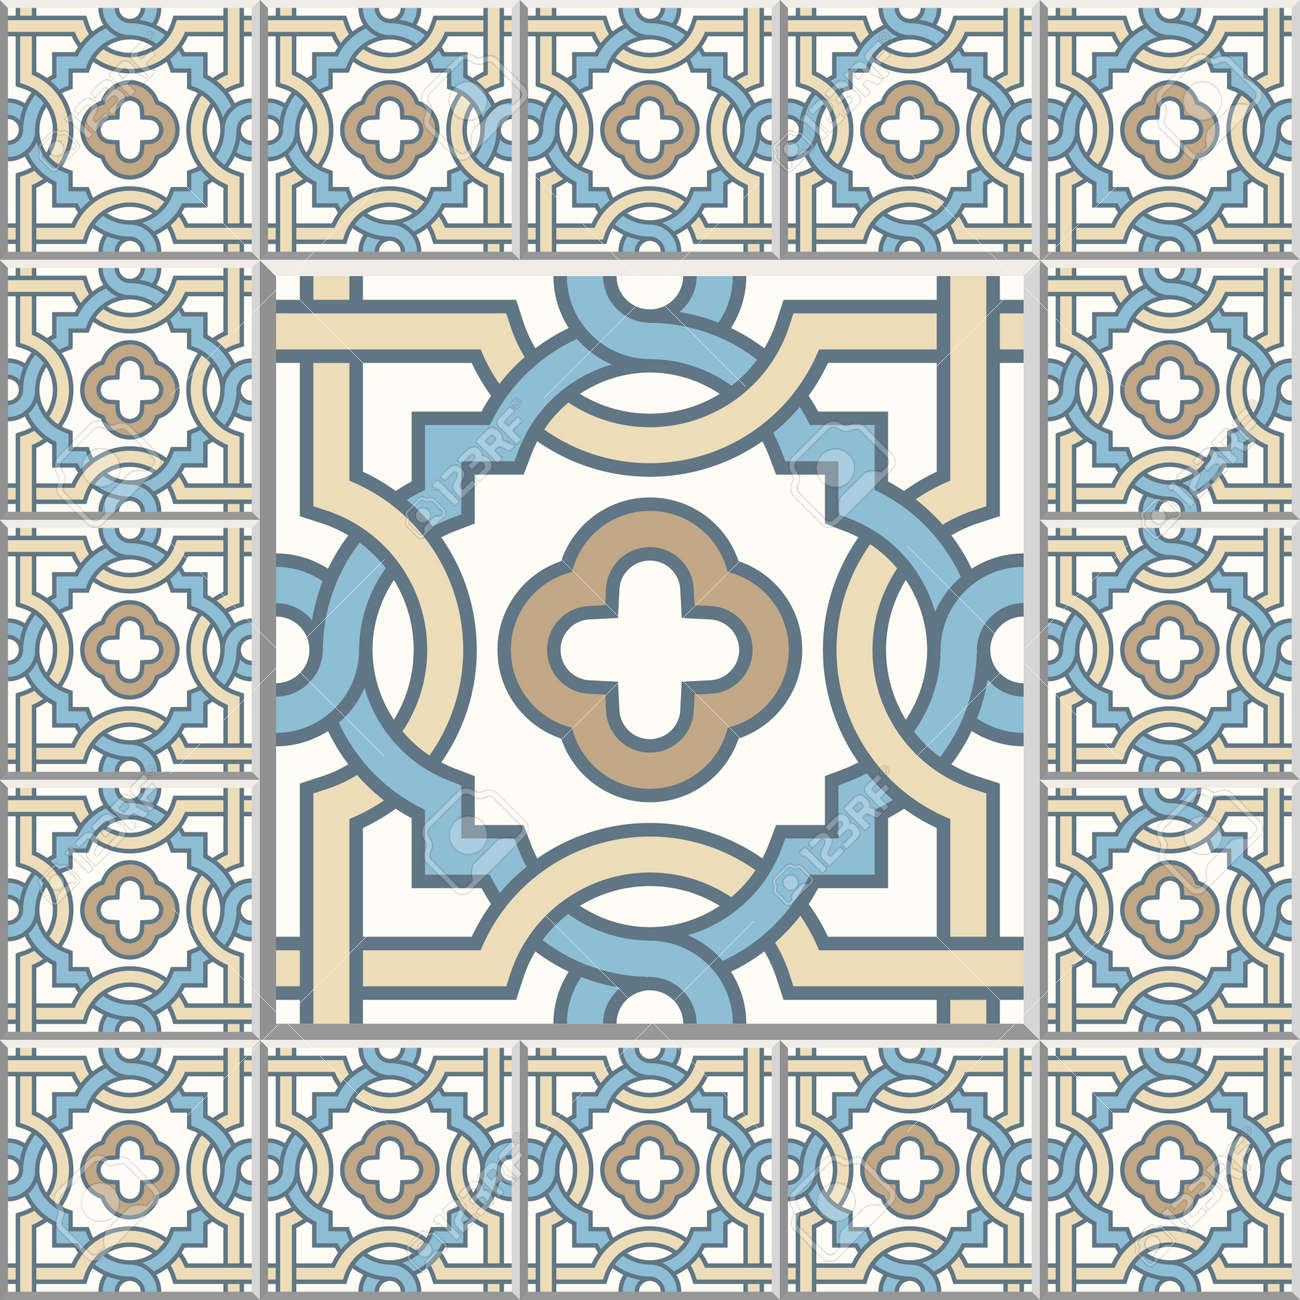 Floor Tiles - Seamless Vintage Pattern With Cement Tiles. Seamless ...